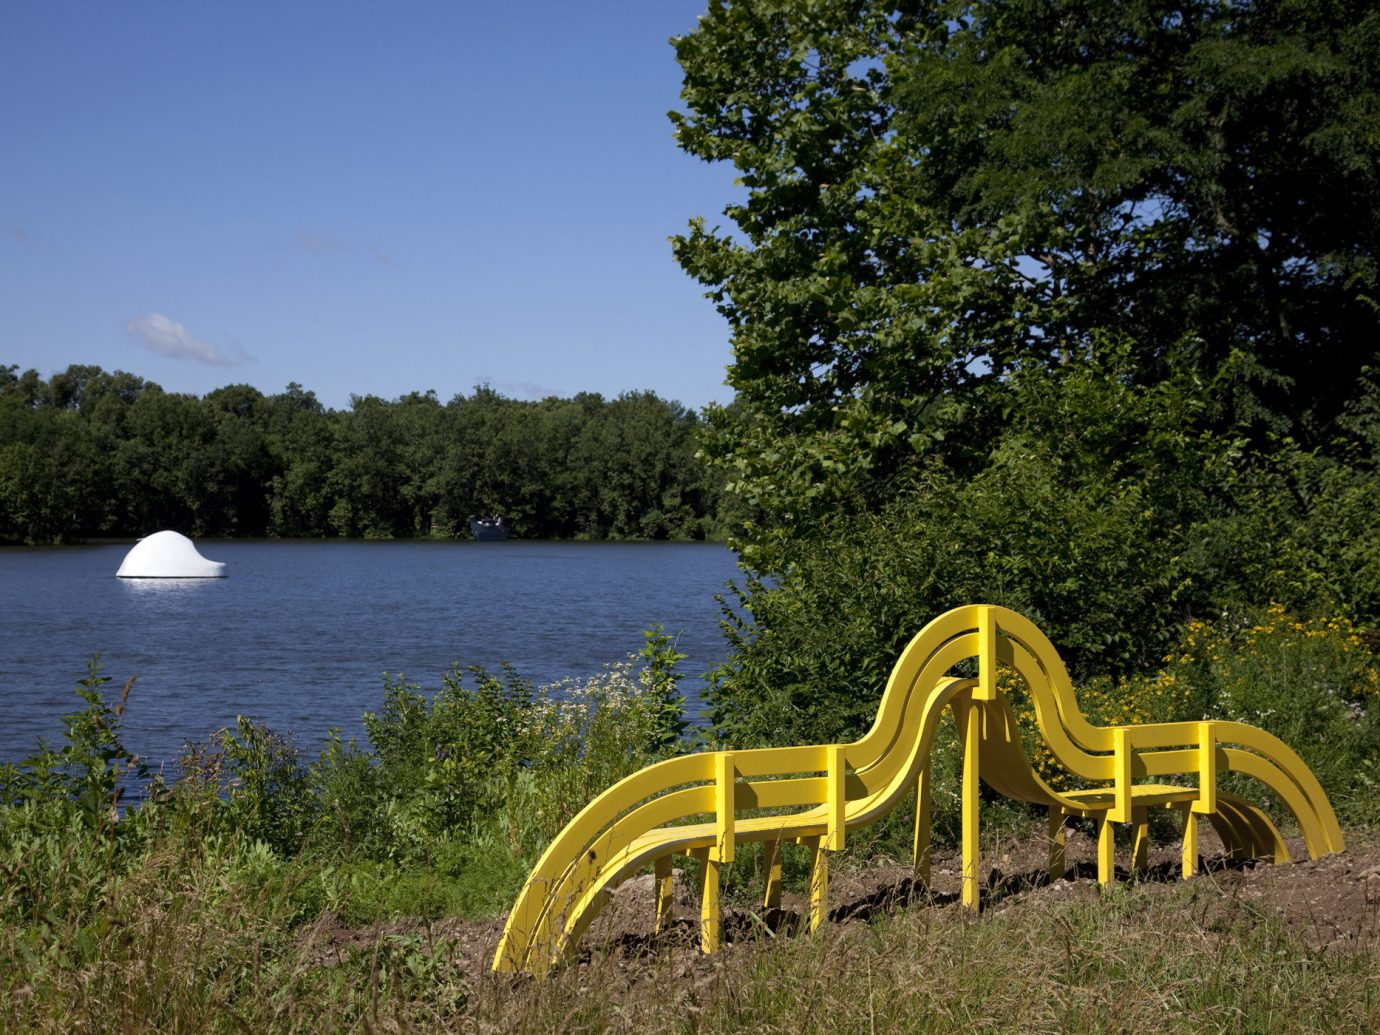 Trip Ideas Weekend Getaways tree outdoor sky water bench grass Lake Nature wooden park meadow overlooking chair seat flower pond surrounded lush